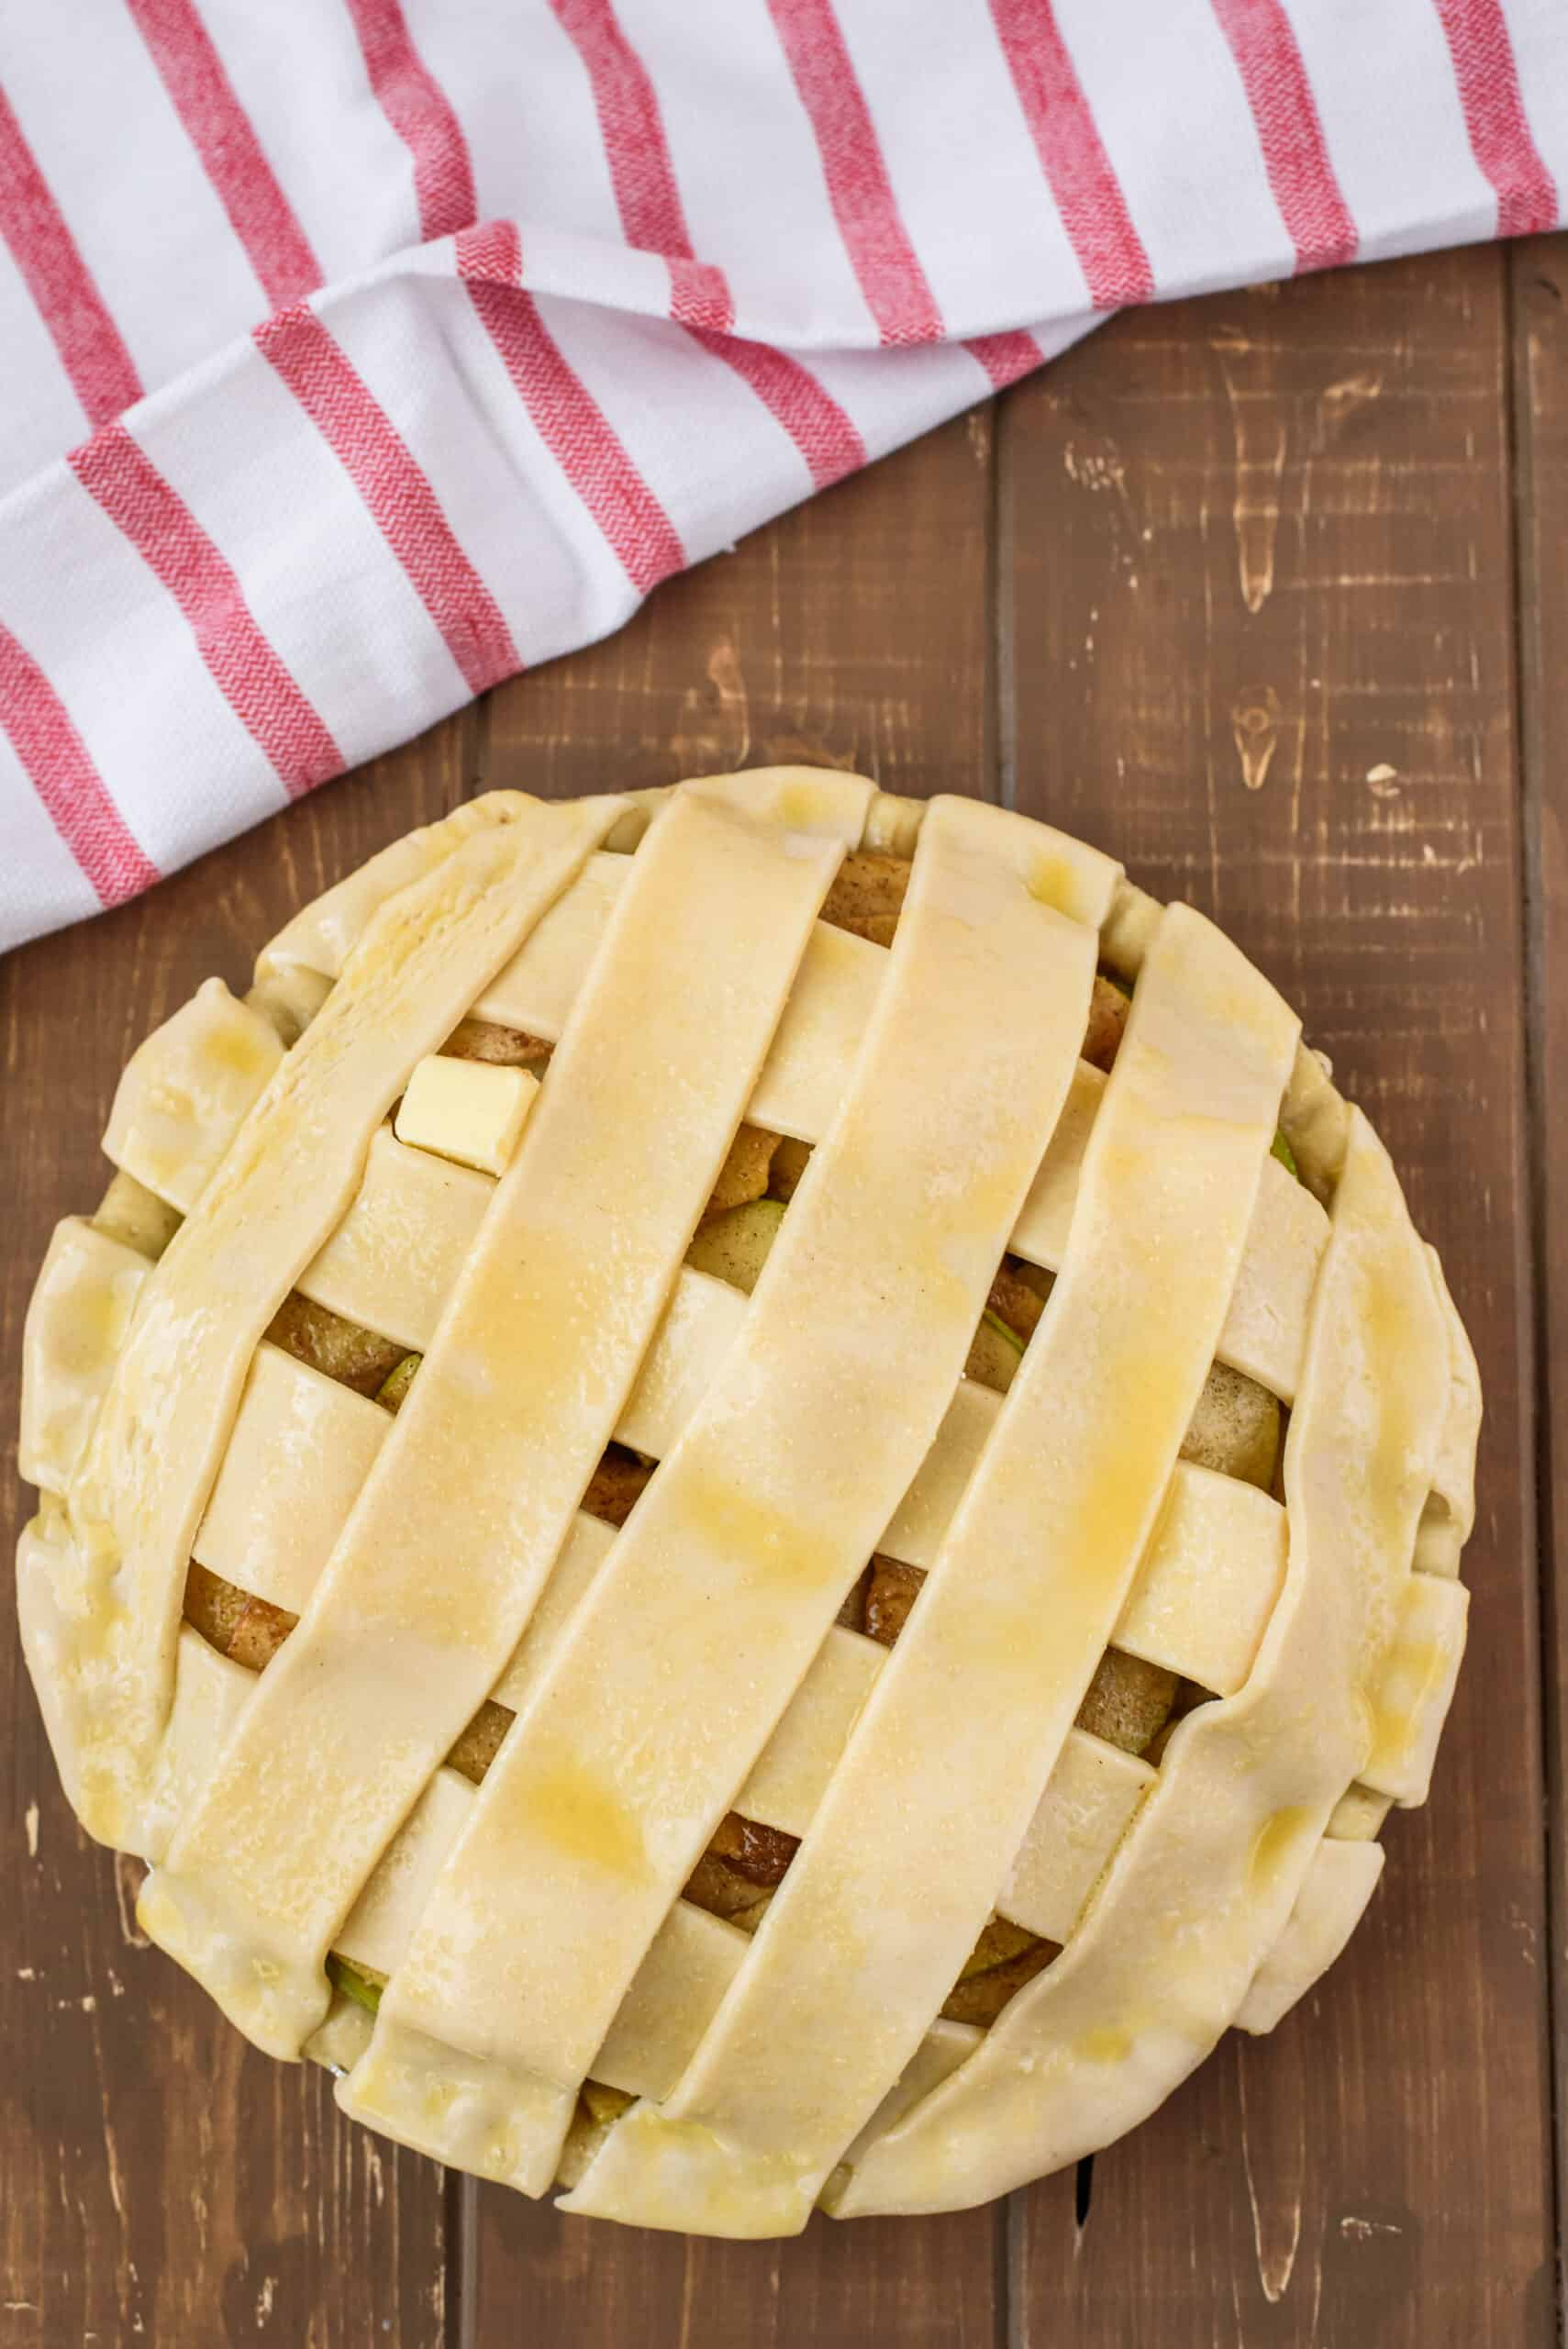 Unbaked pie crust with lattice.